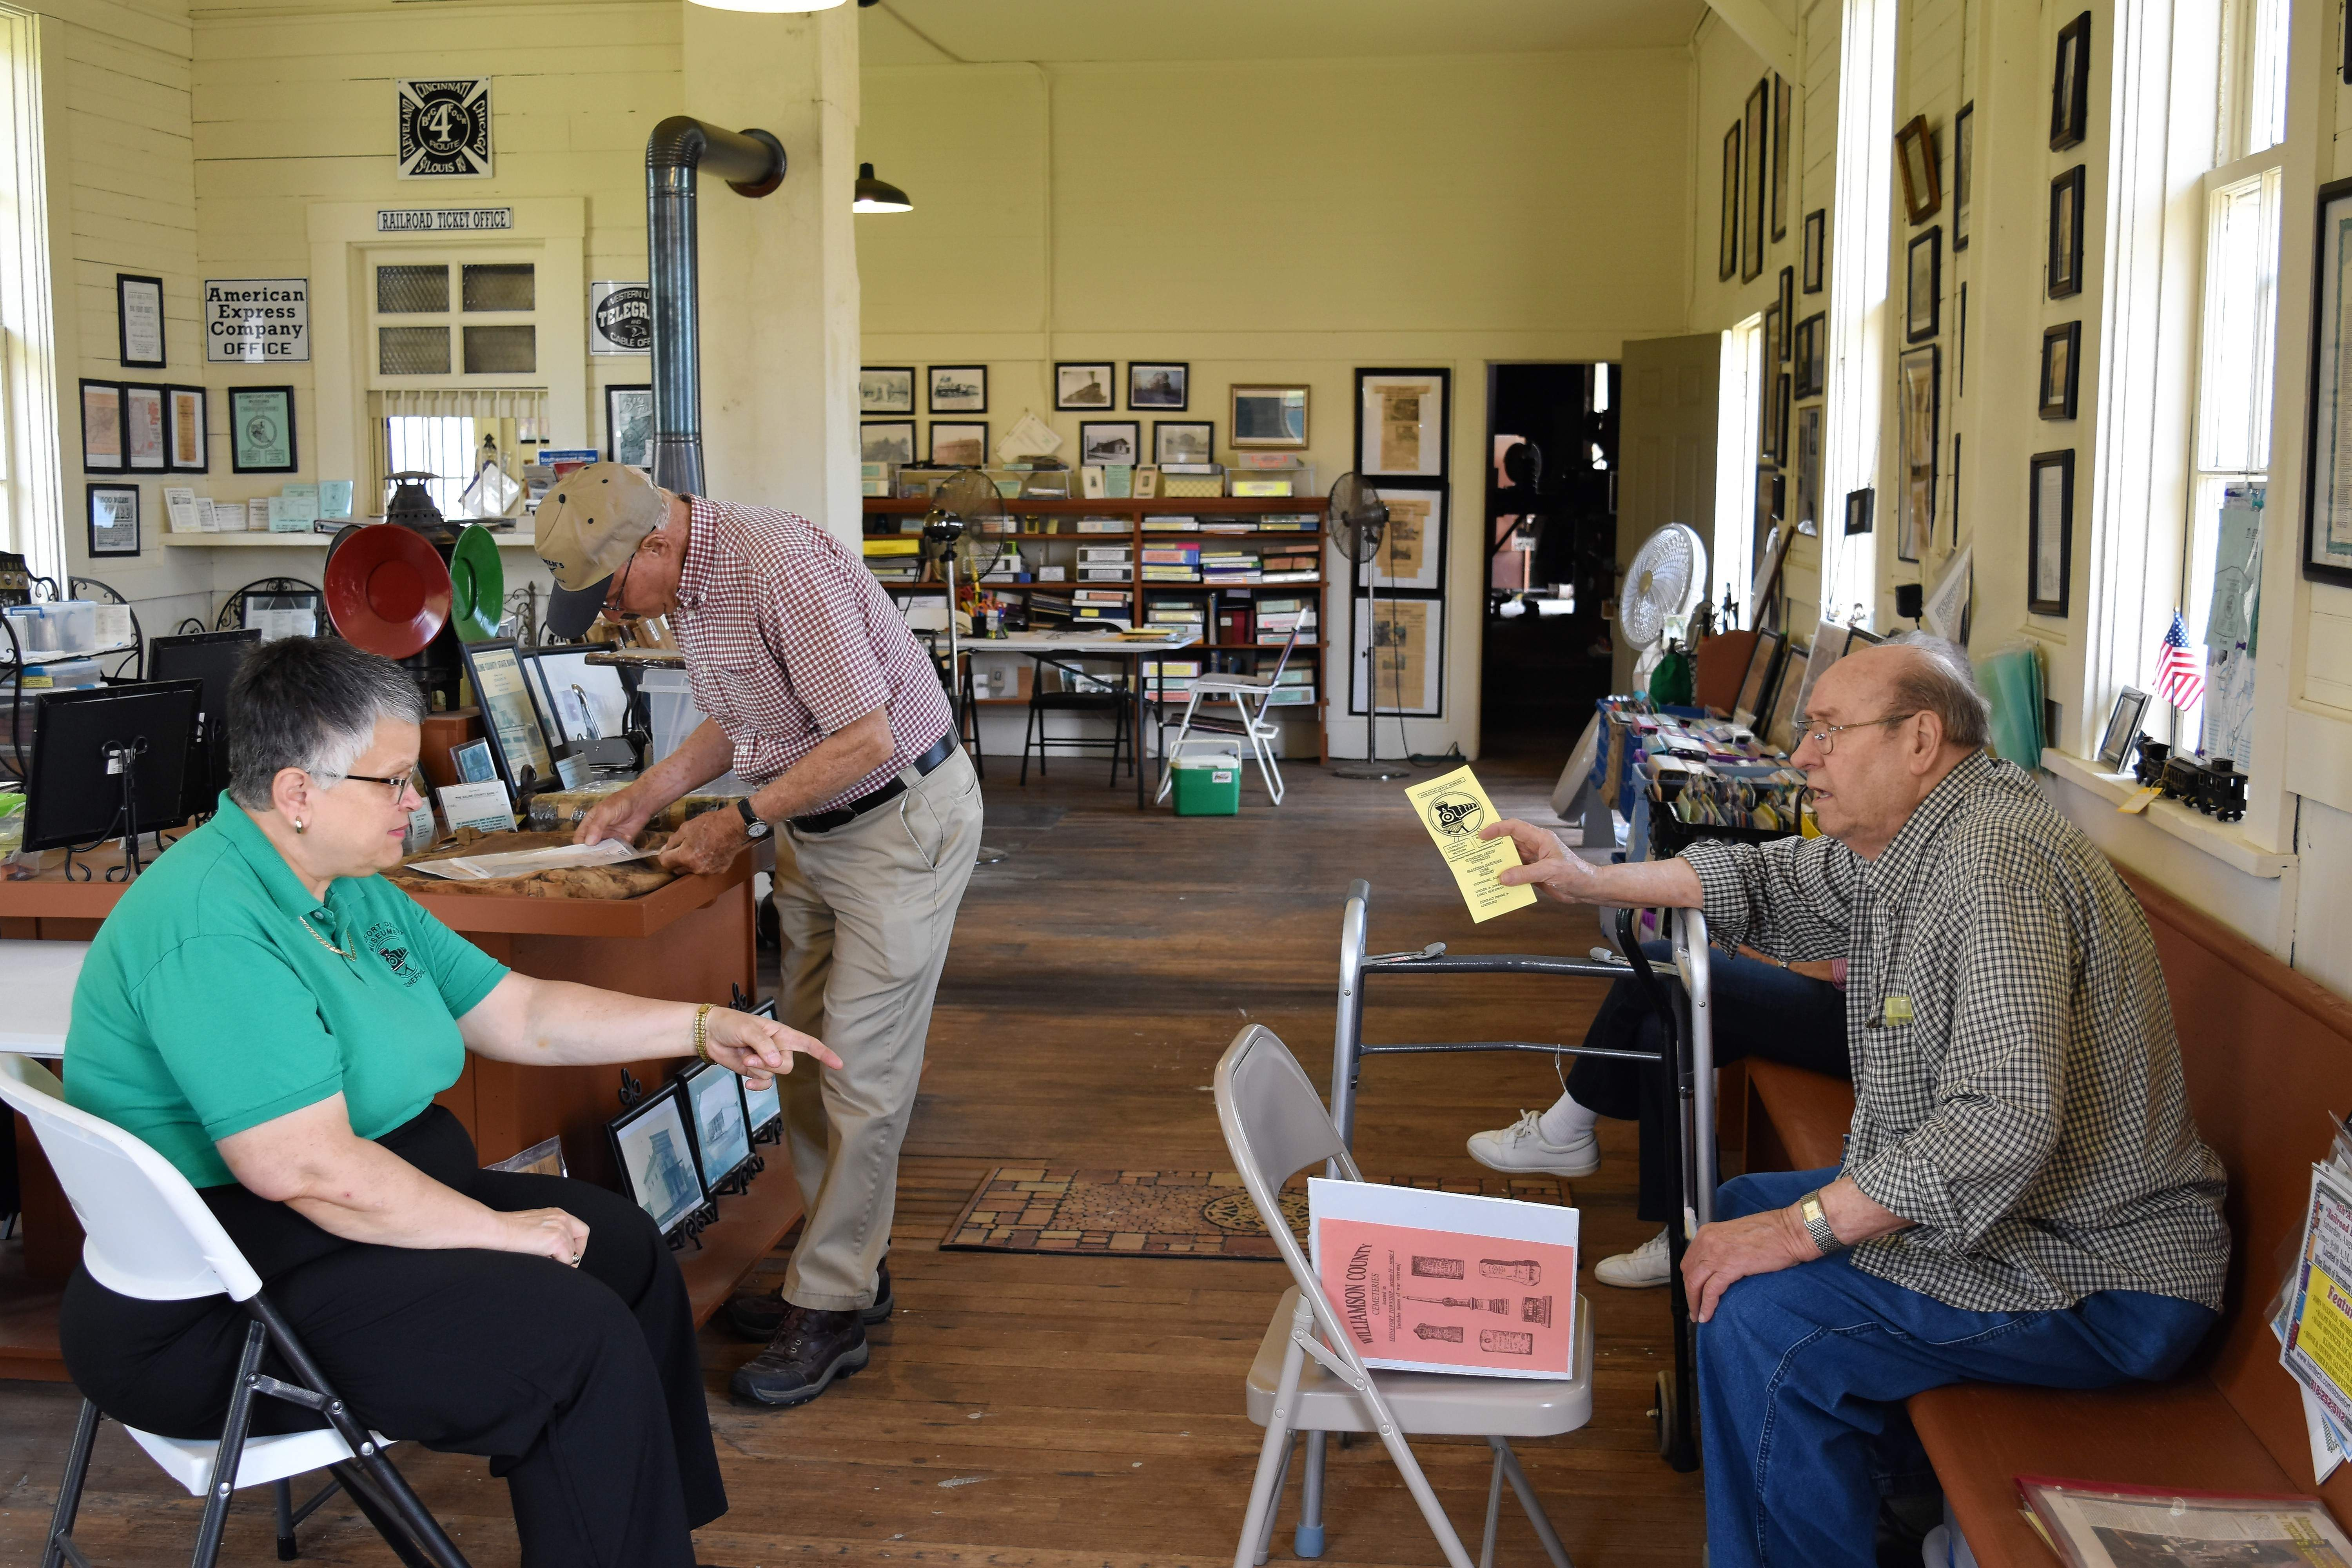 Linda Blackman, left, owner and curator of the Stonefort Railroad Depot Museum, talks with Wendell Hundley of Waterford, Mich., Tuesday afternoon. Kenneth Yandell, who lives near Tunnel Hill with his wife Mary and is a cousin of Hundley's, examines a display.